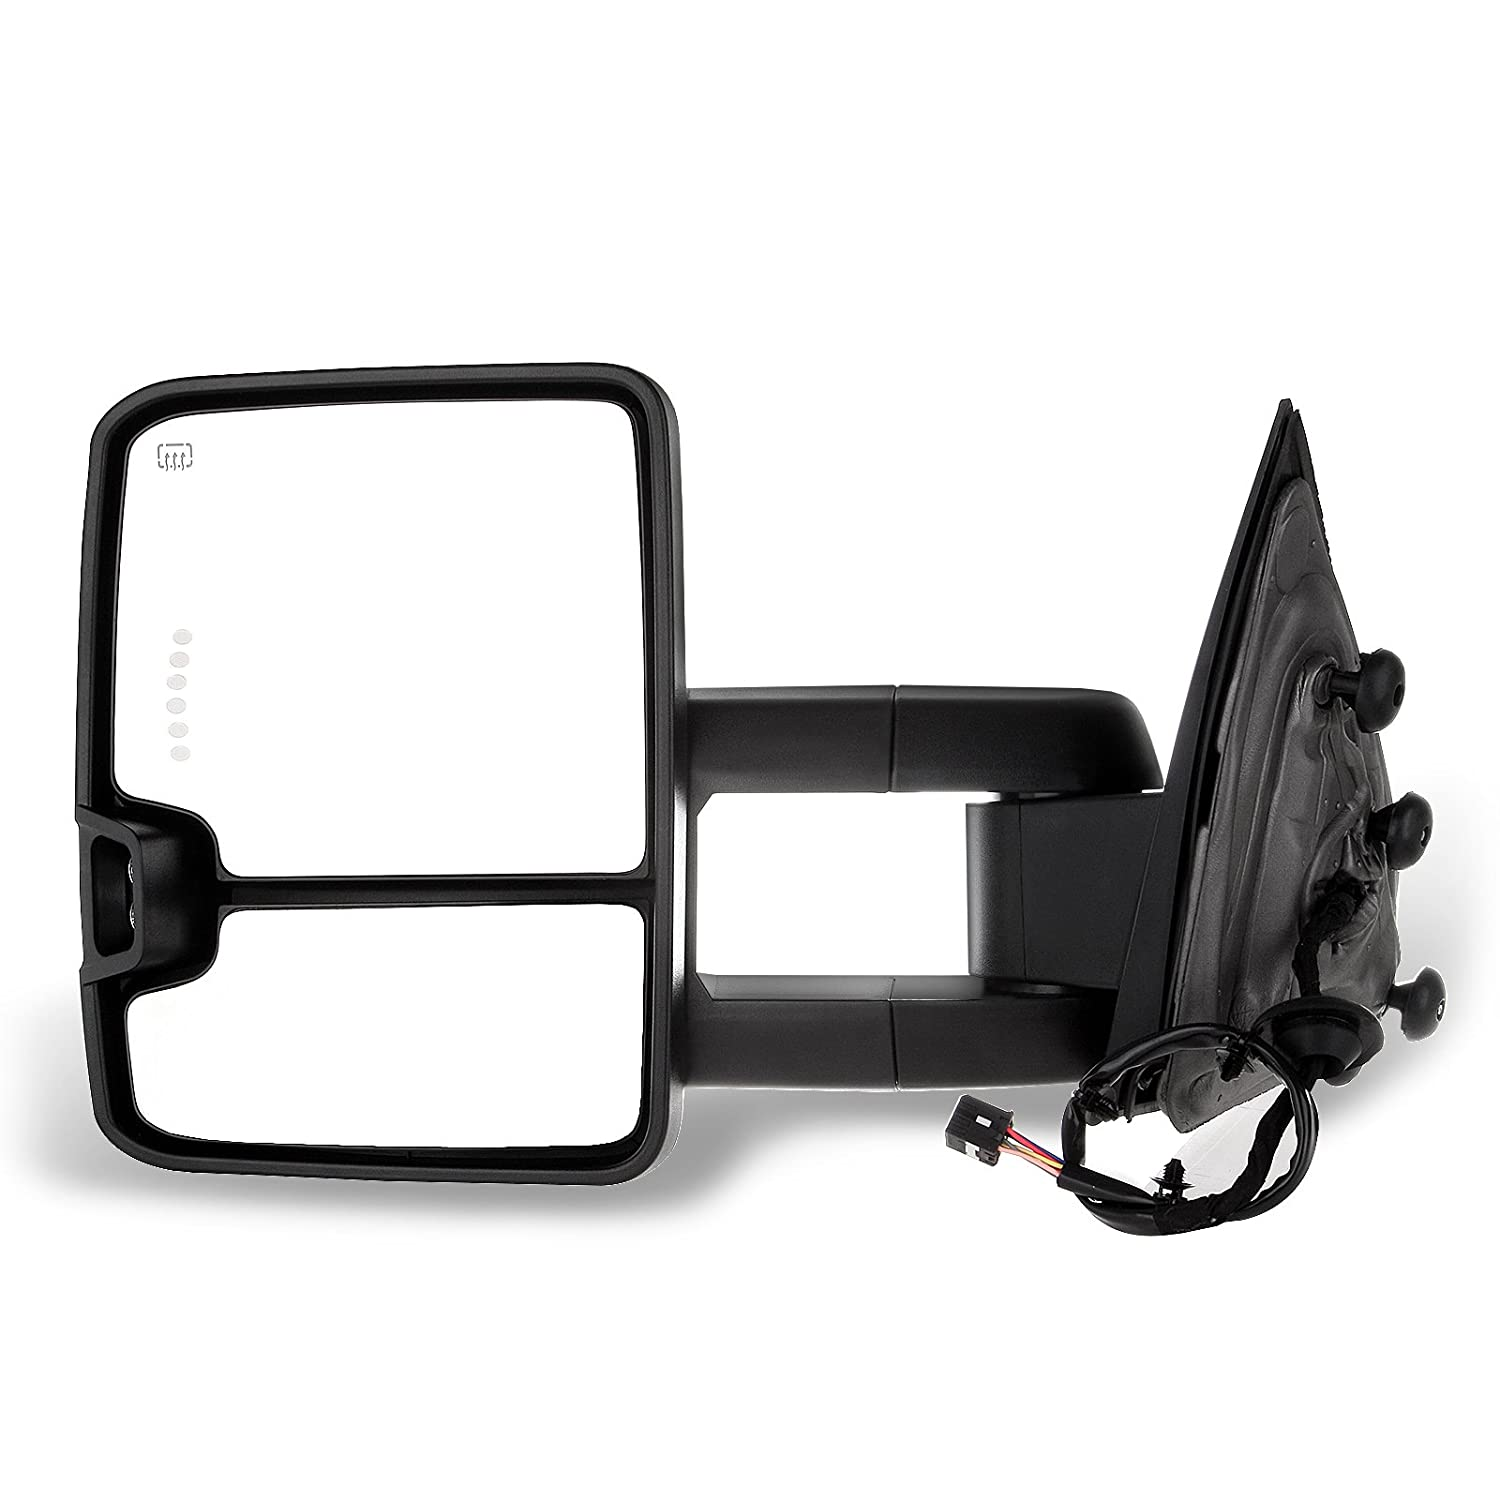 SCITOO fit Chevy GMC Towing Mirrors Chrome Rear View Mirrors fit 2014-2018 Chevy Silverado//GMC Sierra 1500 2015-2018 Chevy Silverado//GMC Sierra/2500 HD 3500HD with Power Heated Signal Backup Light